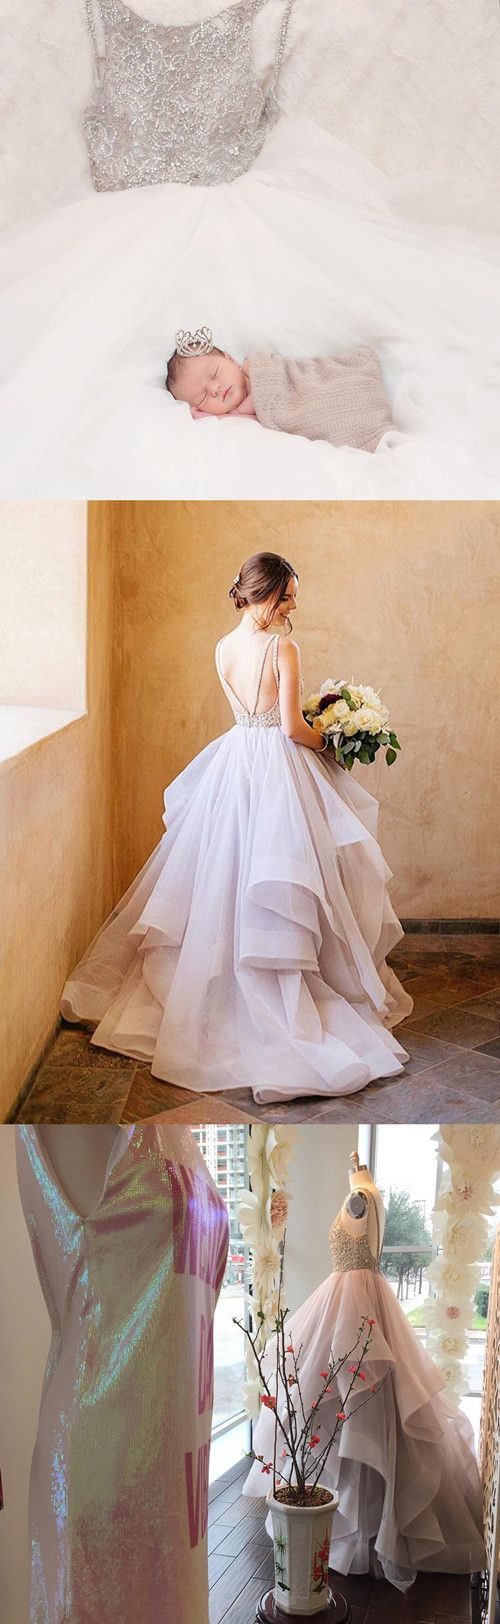 lovely picture! you little baby also love this wedding gowns